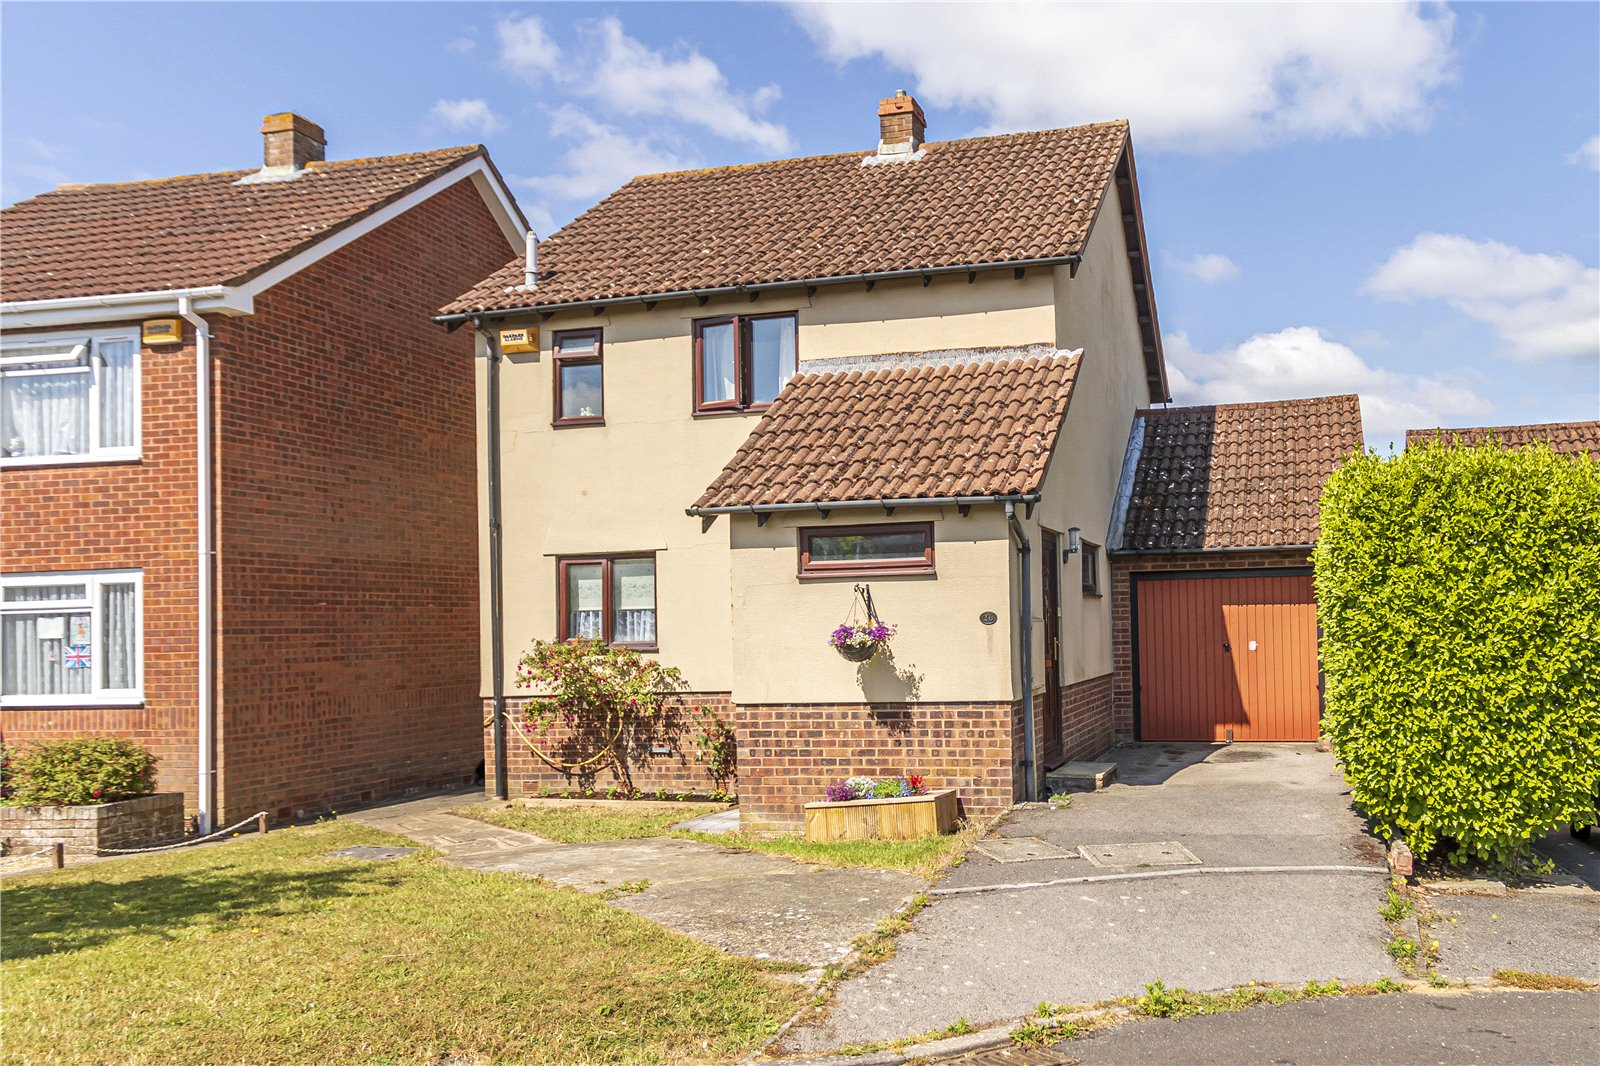 3 bed house for sale in Plantagenet Crescent, Bournemouth - Property Image 1